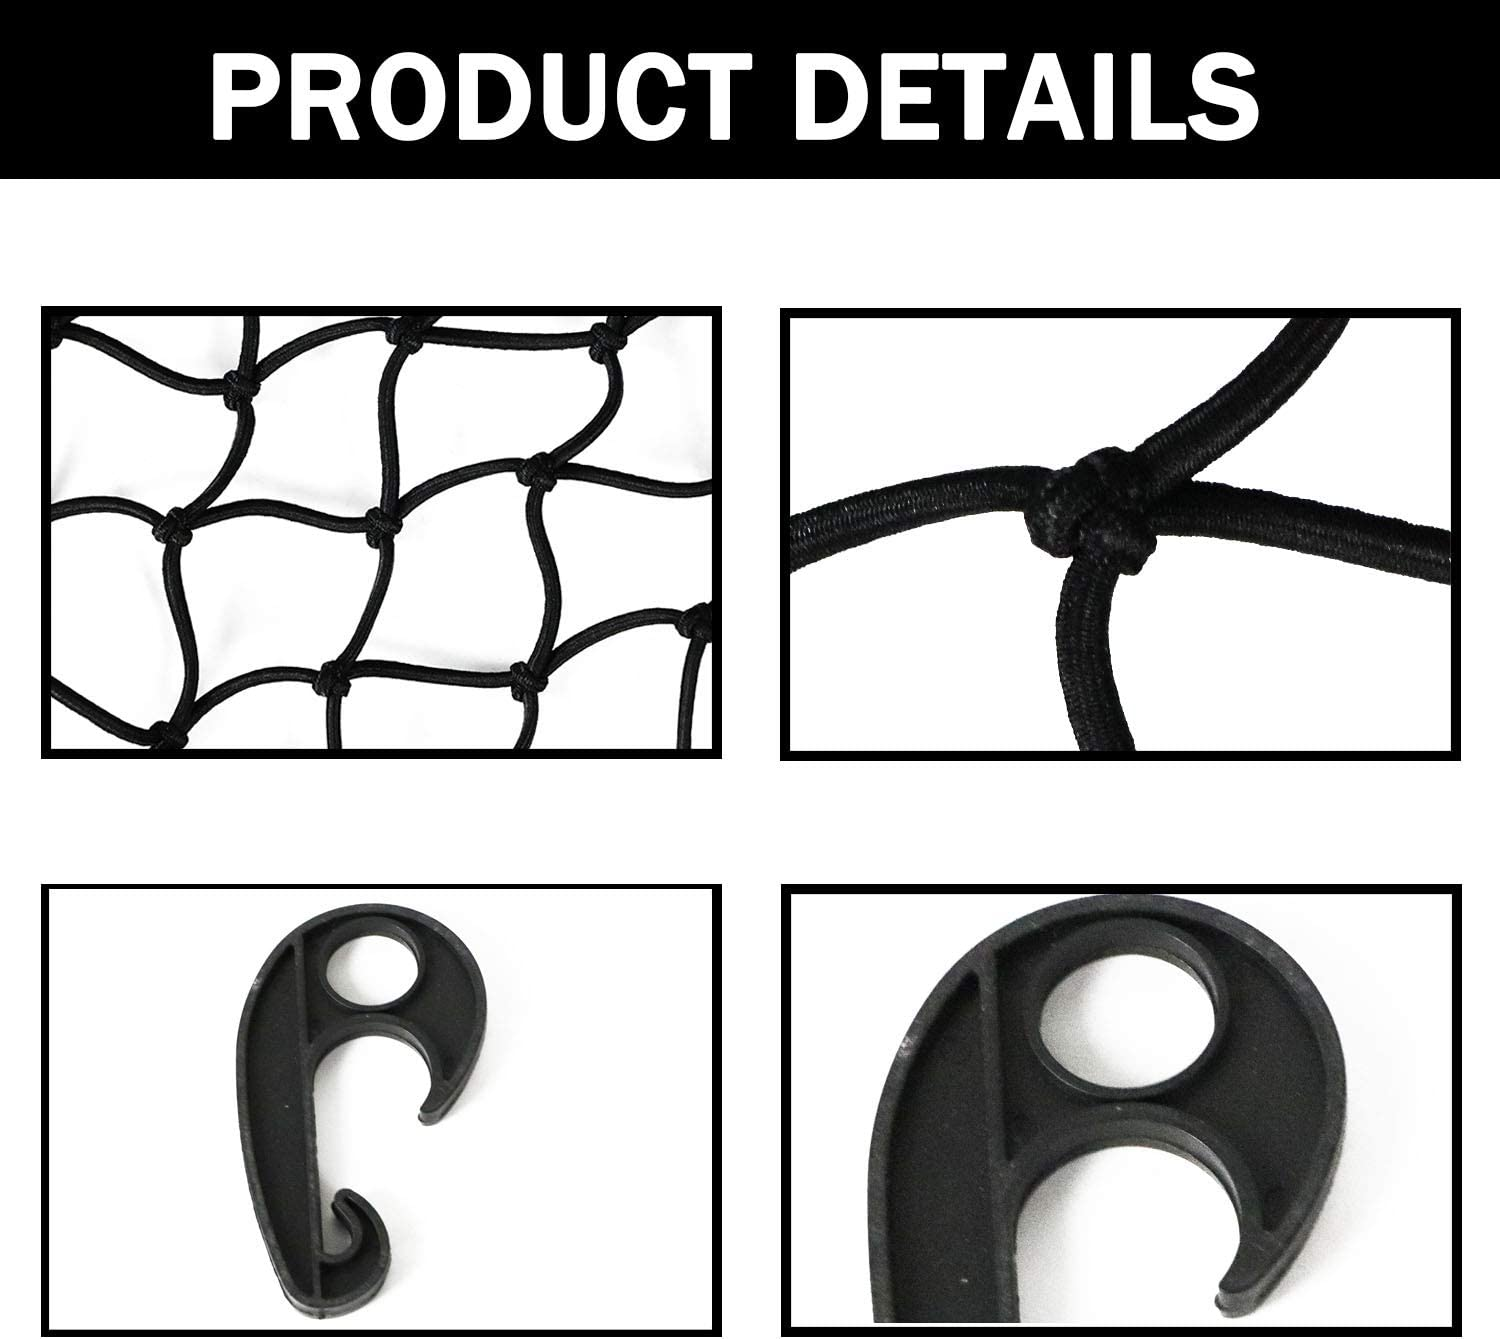 Small 2x2 Mesh Holds Small and Large Loads Tighter 12 Adjustable Hooks for Rooftop Cargo Carrier ATV UTV Cargo Hitch Dibanyou 22x38 Super Duty Bungee Cargo Net Stretches to 44x76